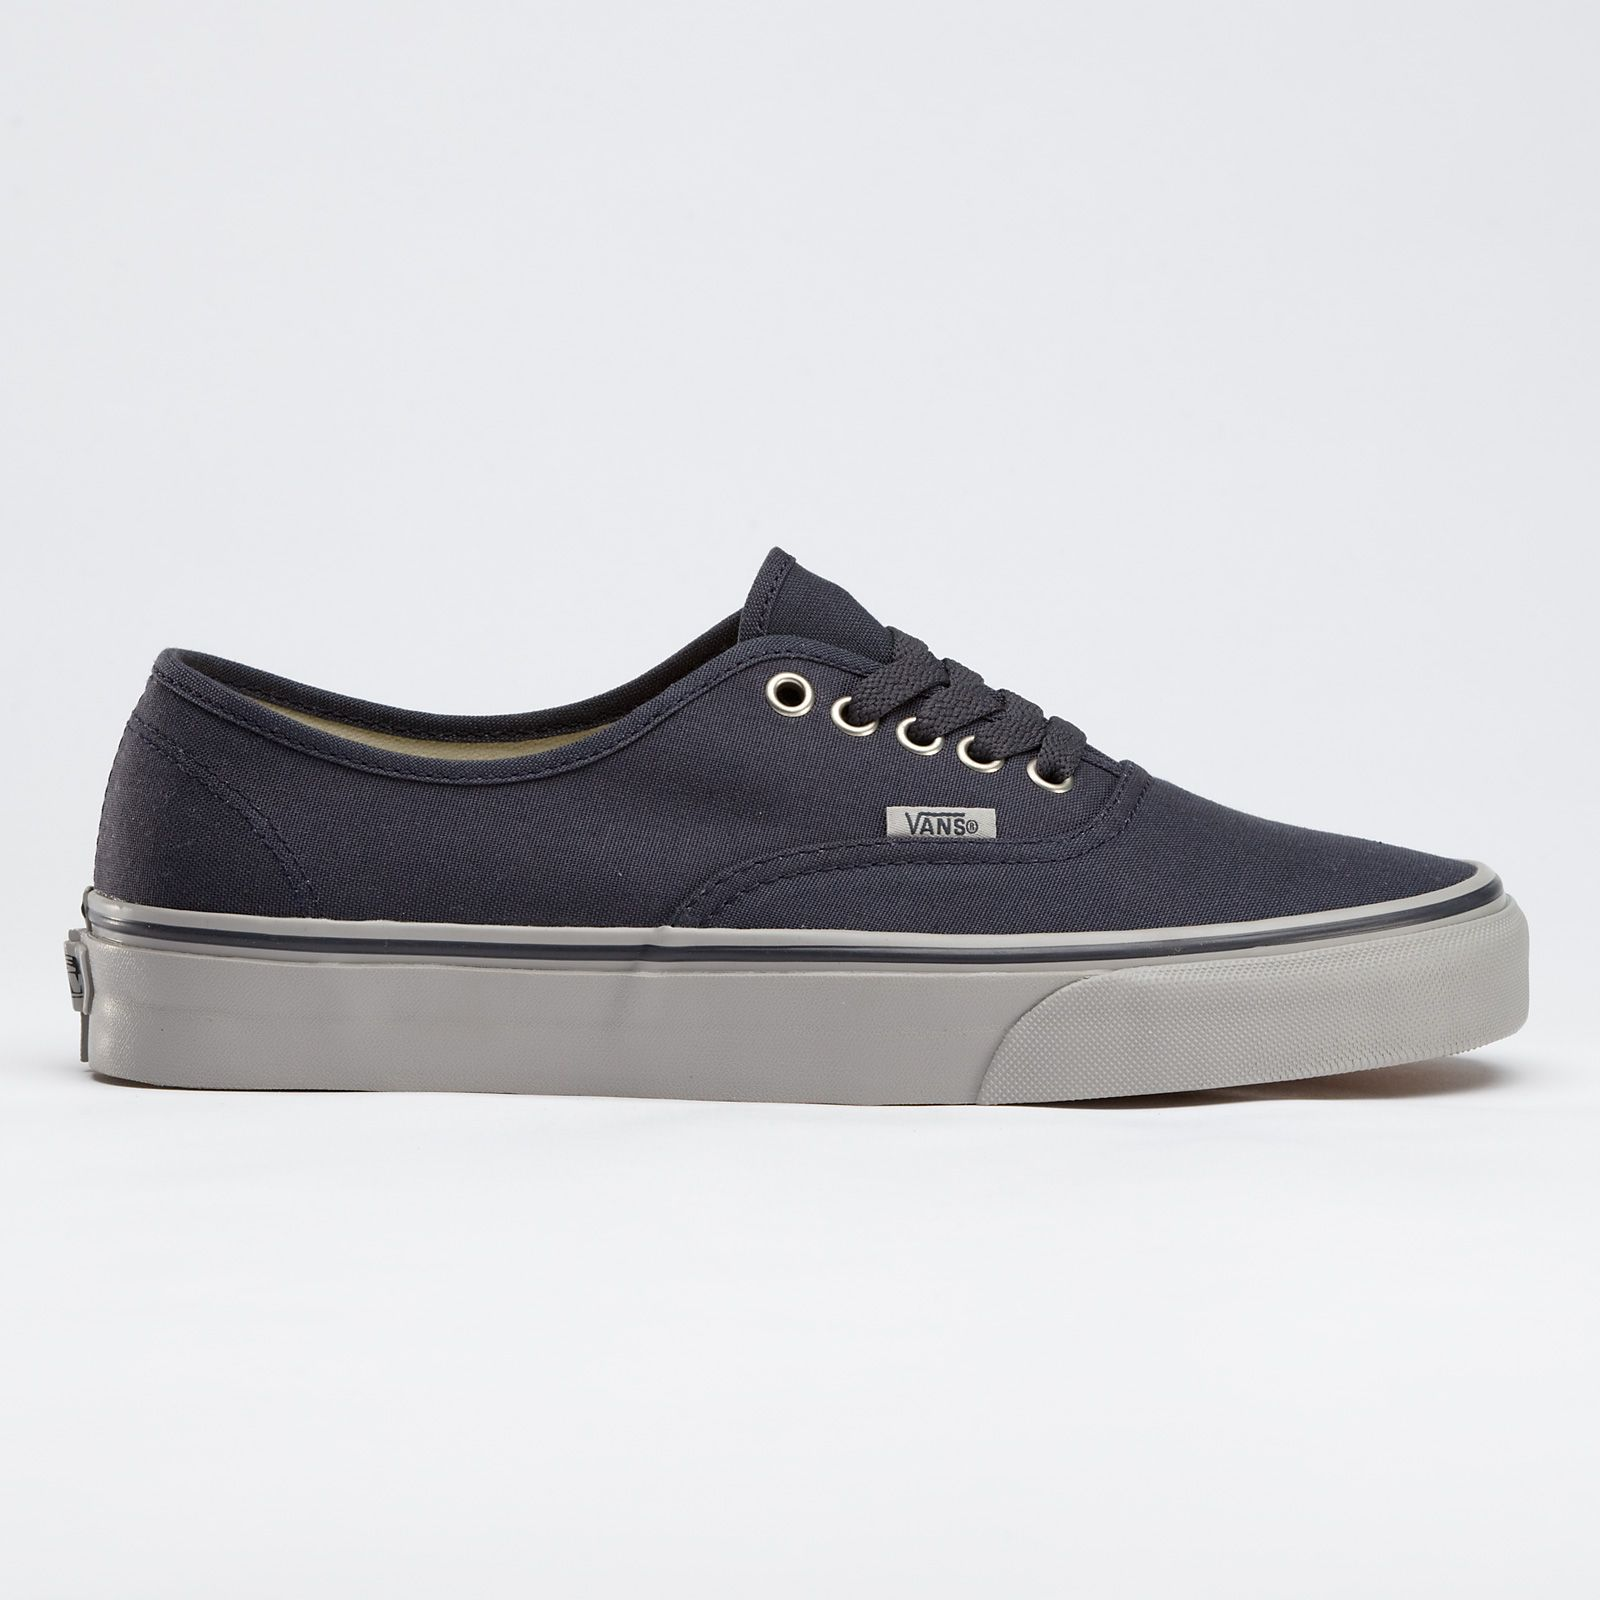 Canvas Authentic Vans in Ebony/Ice Gray. nice and neutral but not too boring